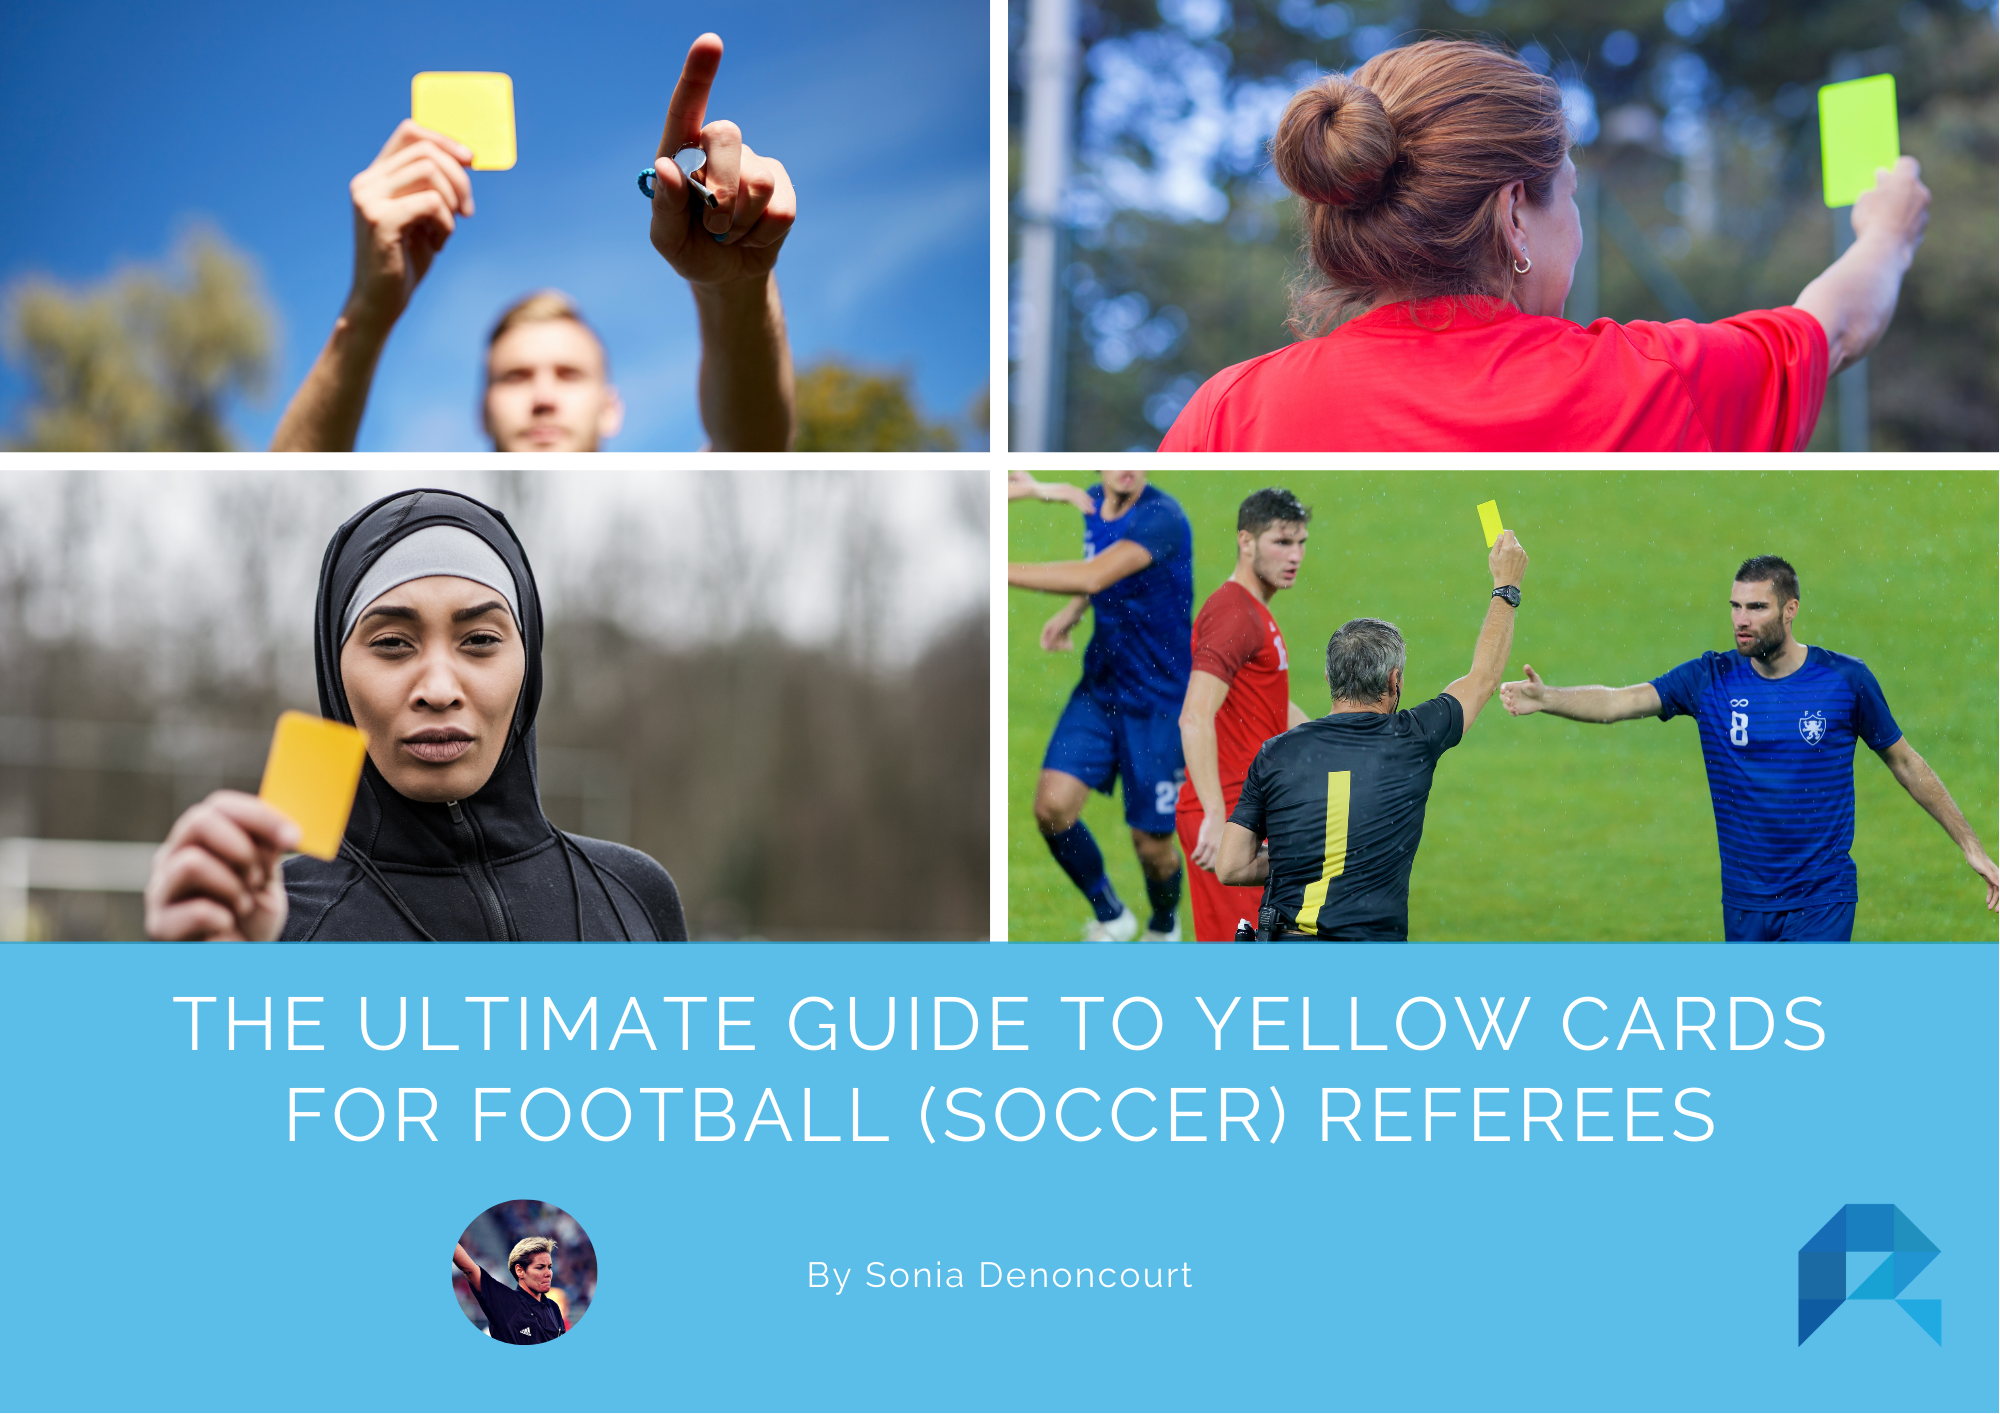 The Ultimate Guide to Yellow Cards for Football (Soccer) Referees